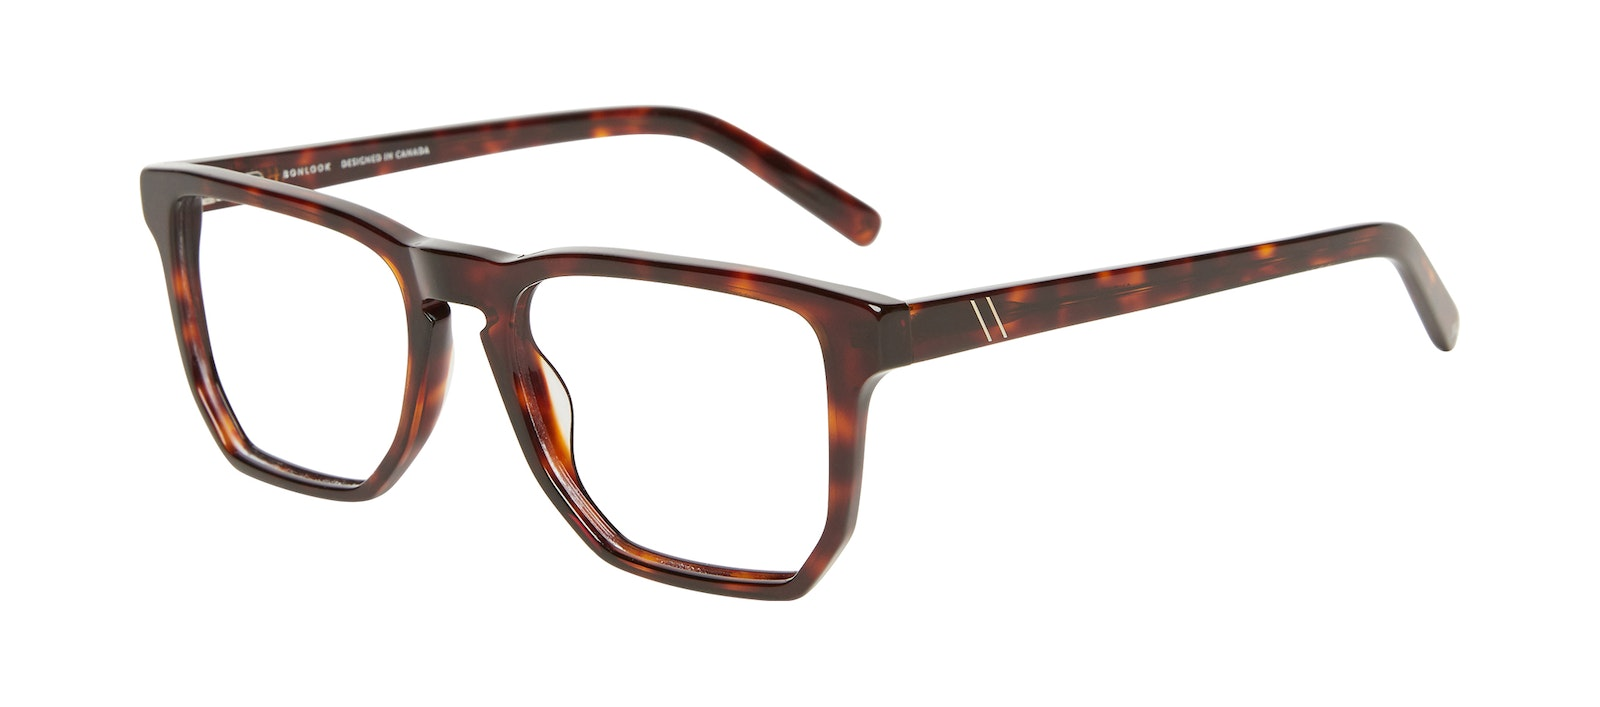 Affordable Fashion Glasses Square Eyeglasses Men Andy Tortoise Tilt